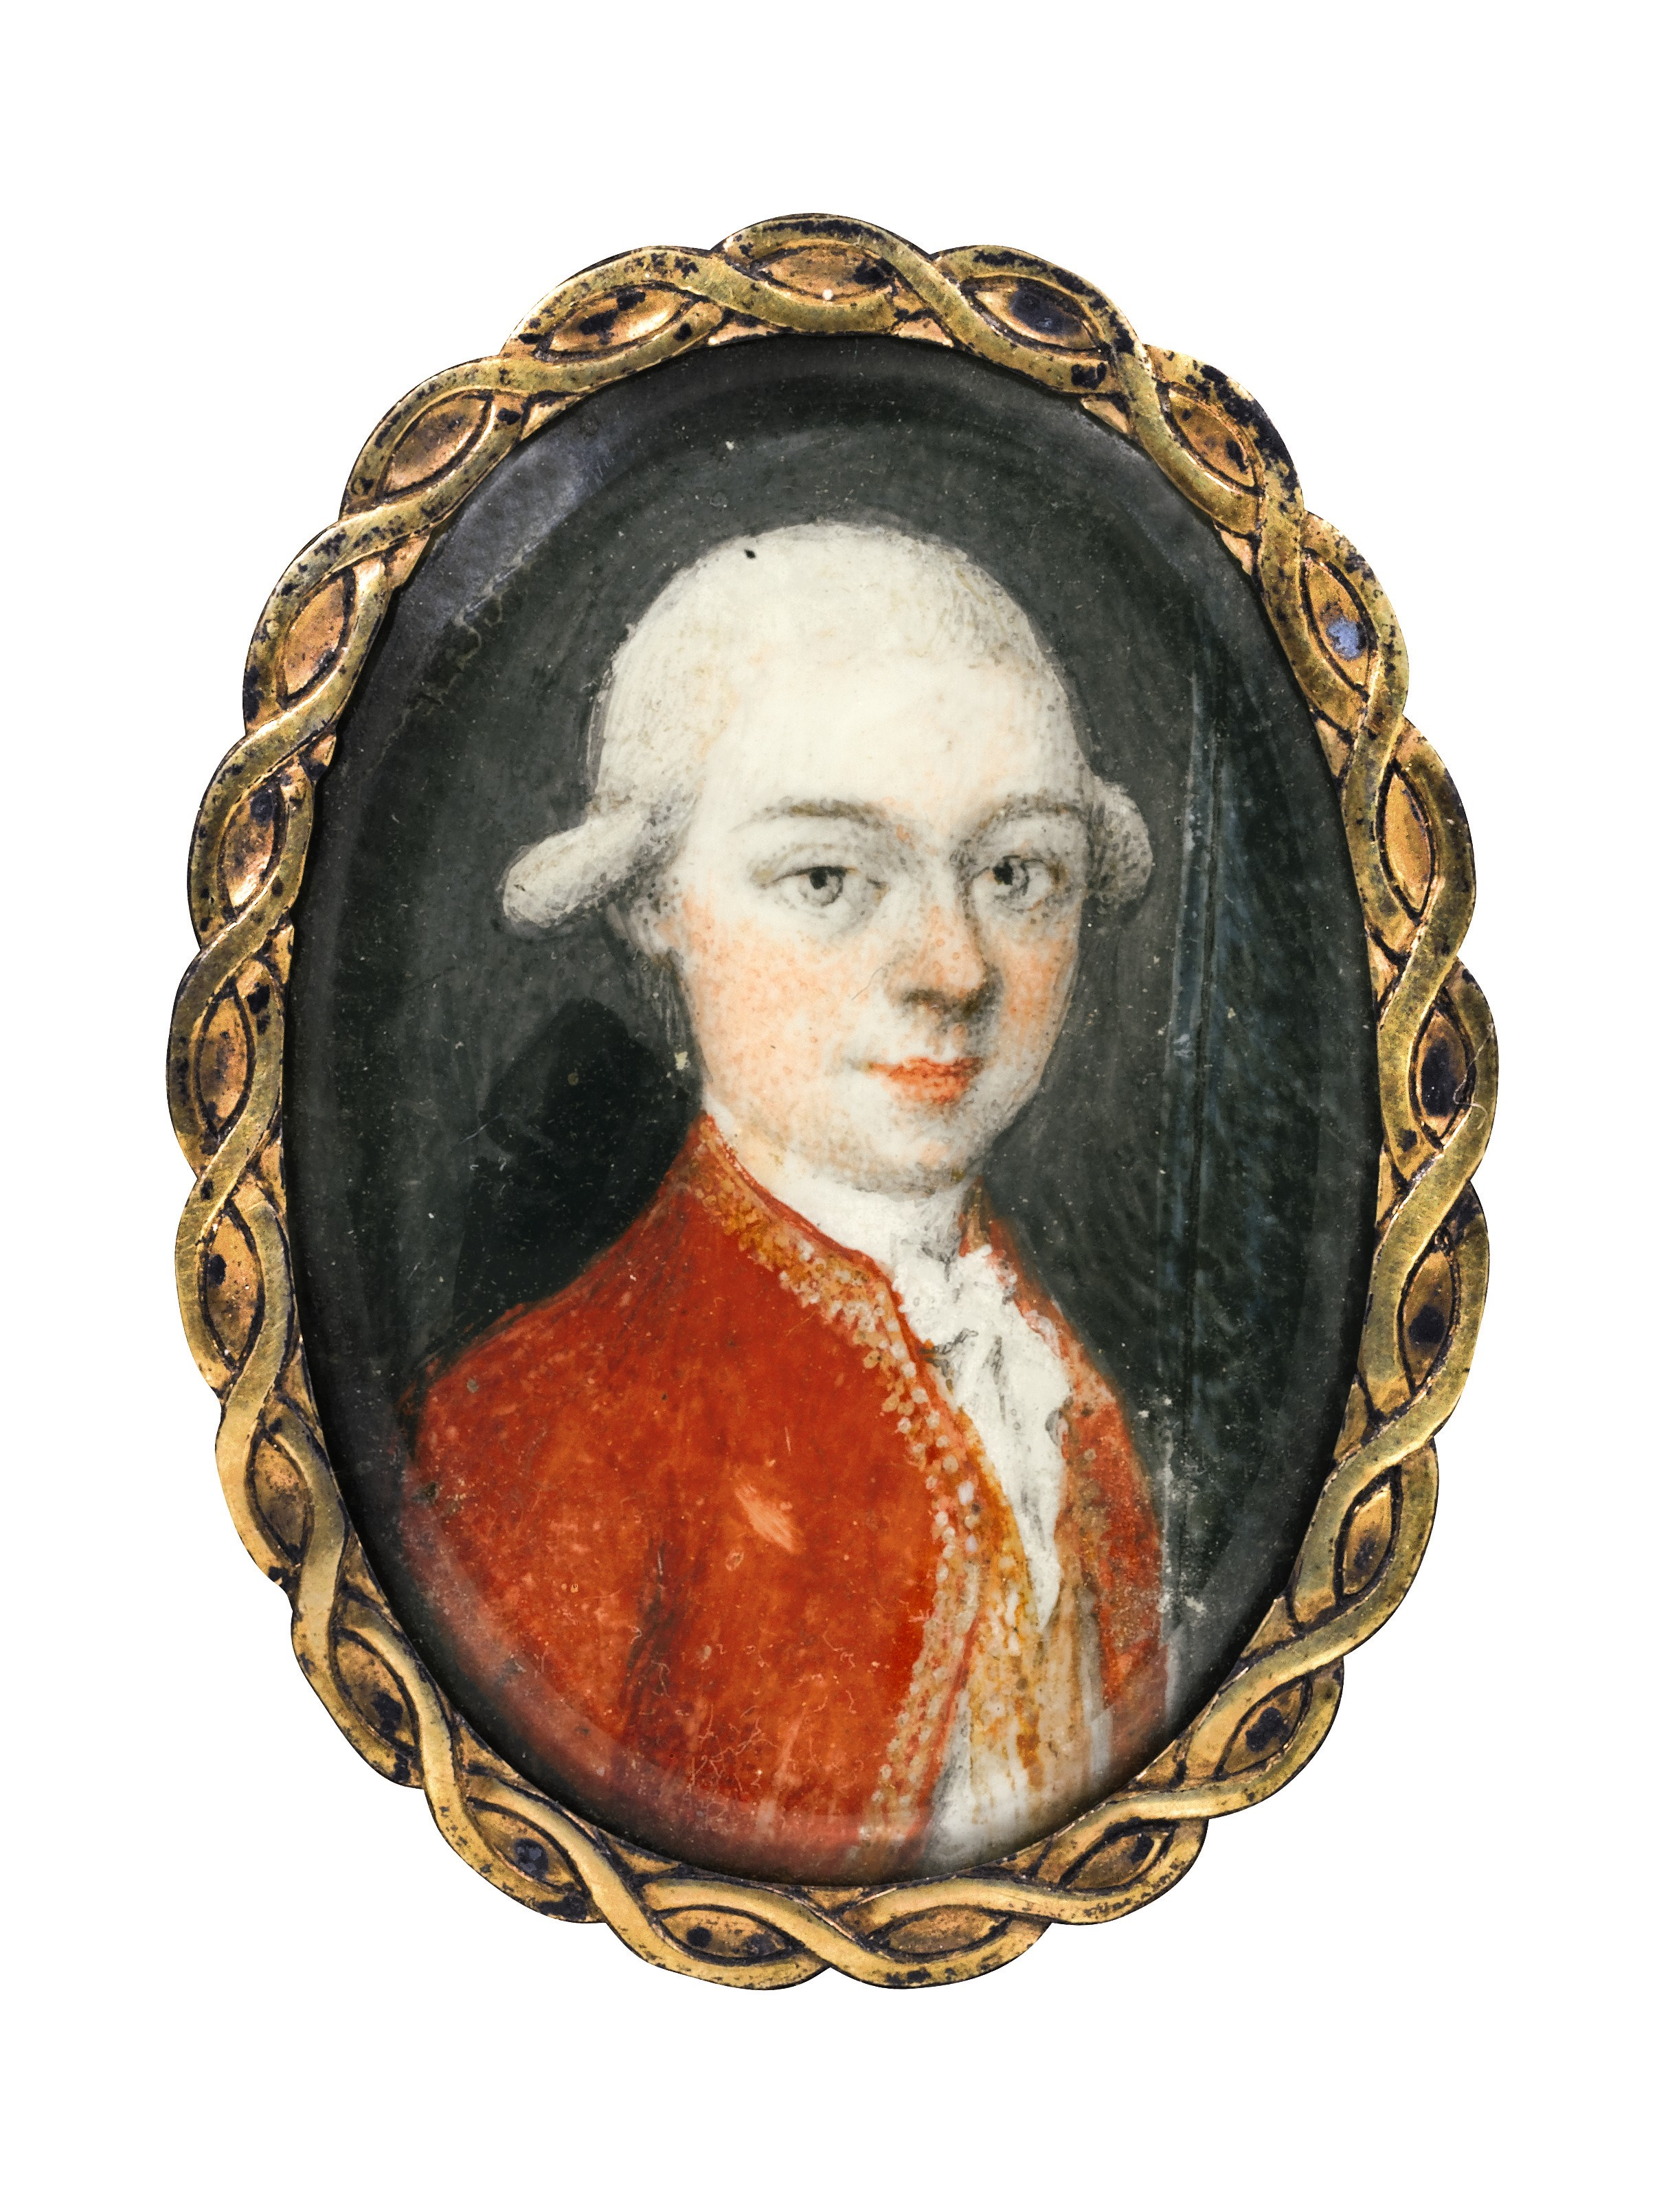 Miniature portrait of Mozart